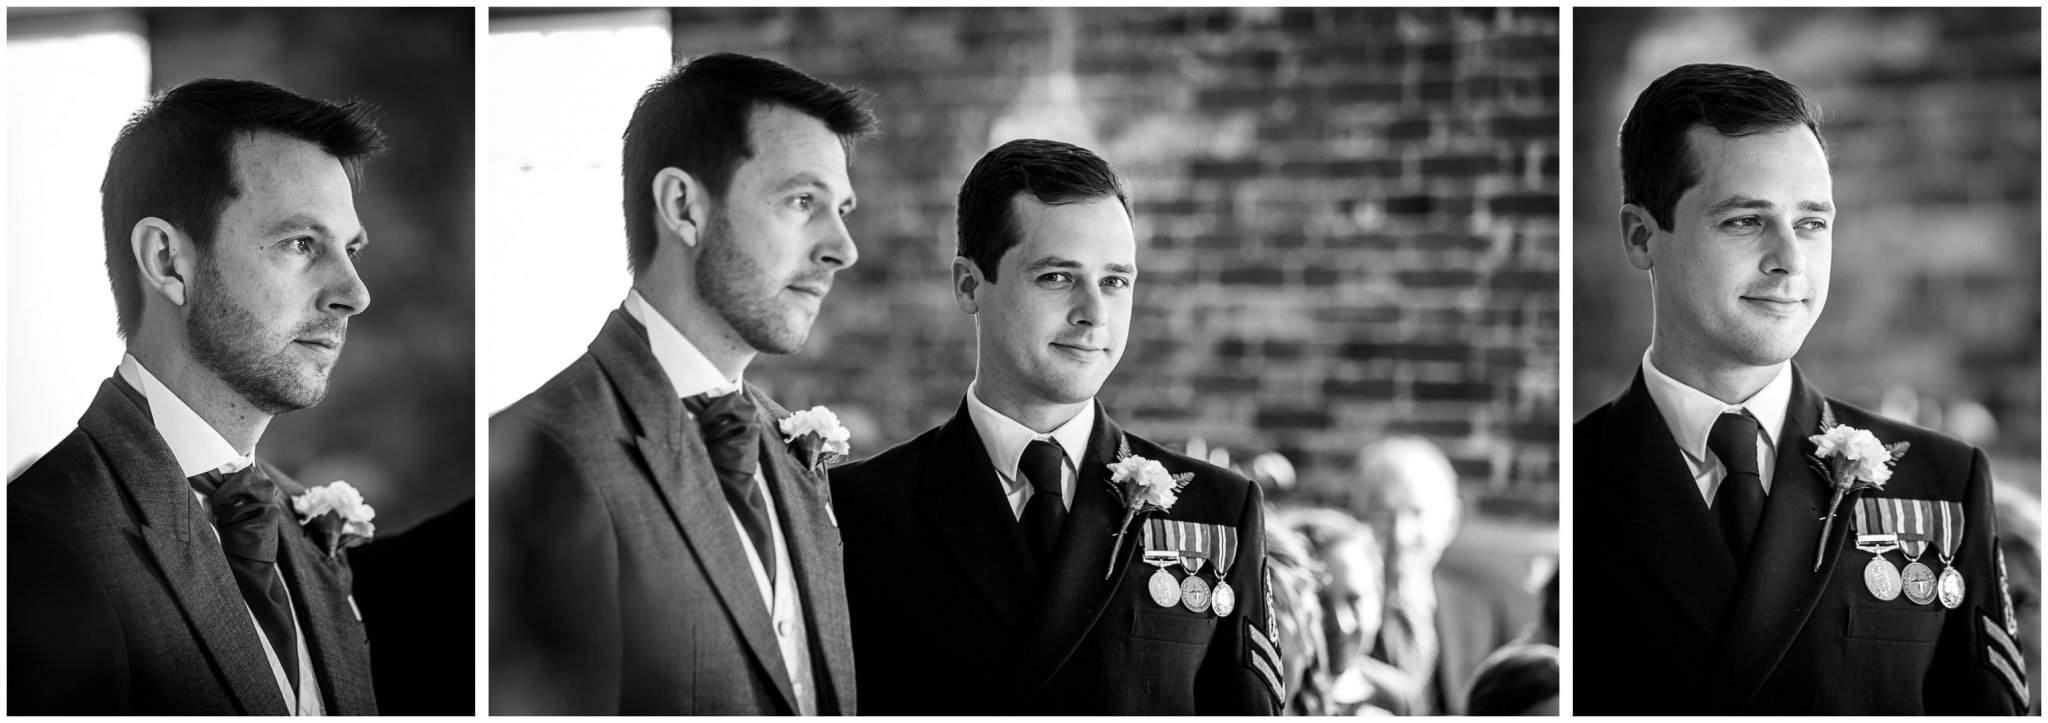 Sopley wedding photographer black and white portraits